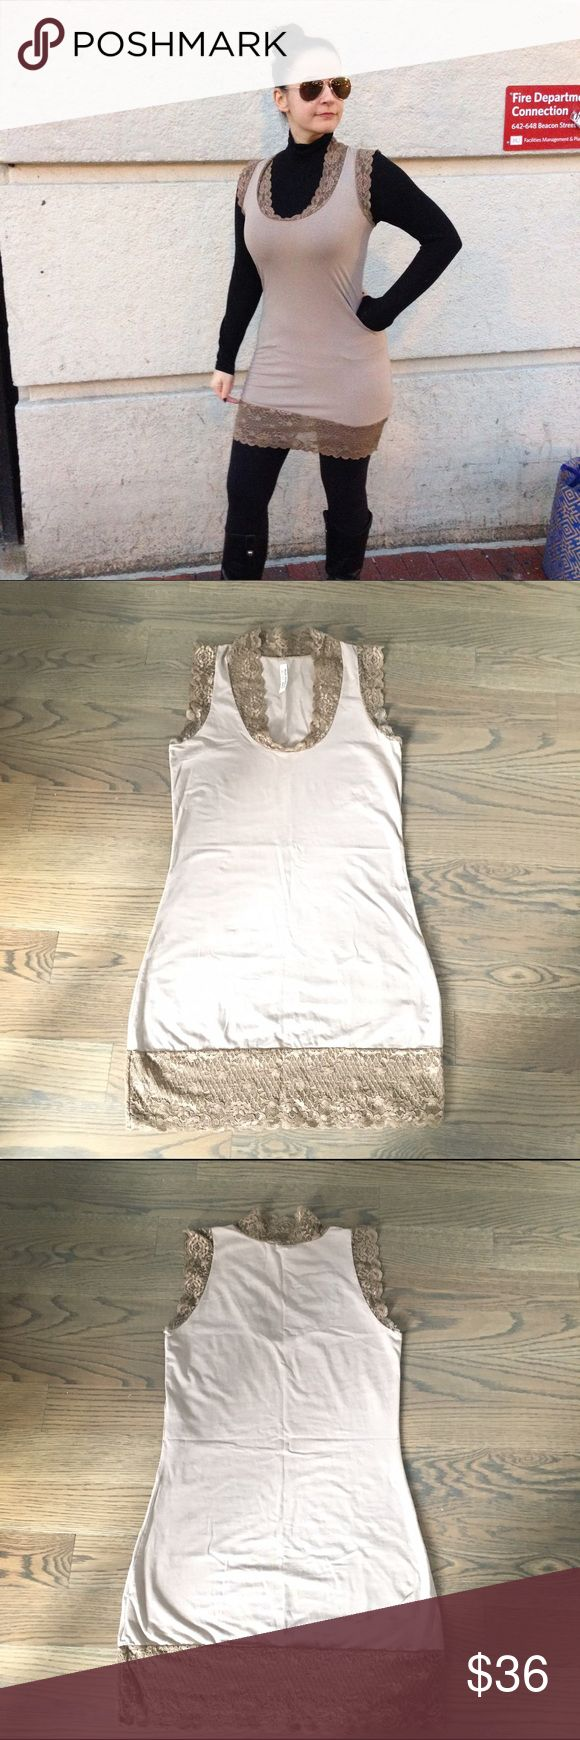 Body con Free People Lace Dress Body con Free People Lace Dress                            - Excellent shape (only worn once)                             - Smoke free & pet free home                                   - Feel free to make me an offer Free People Dresses Mini